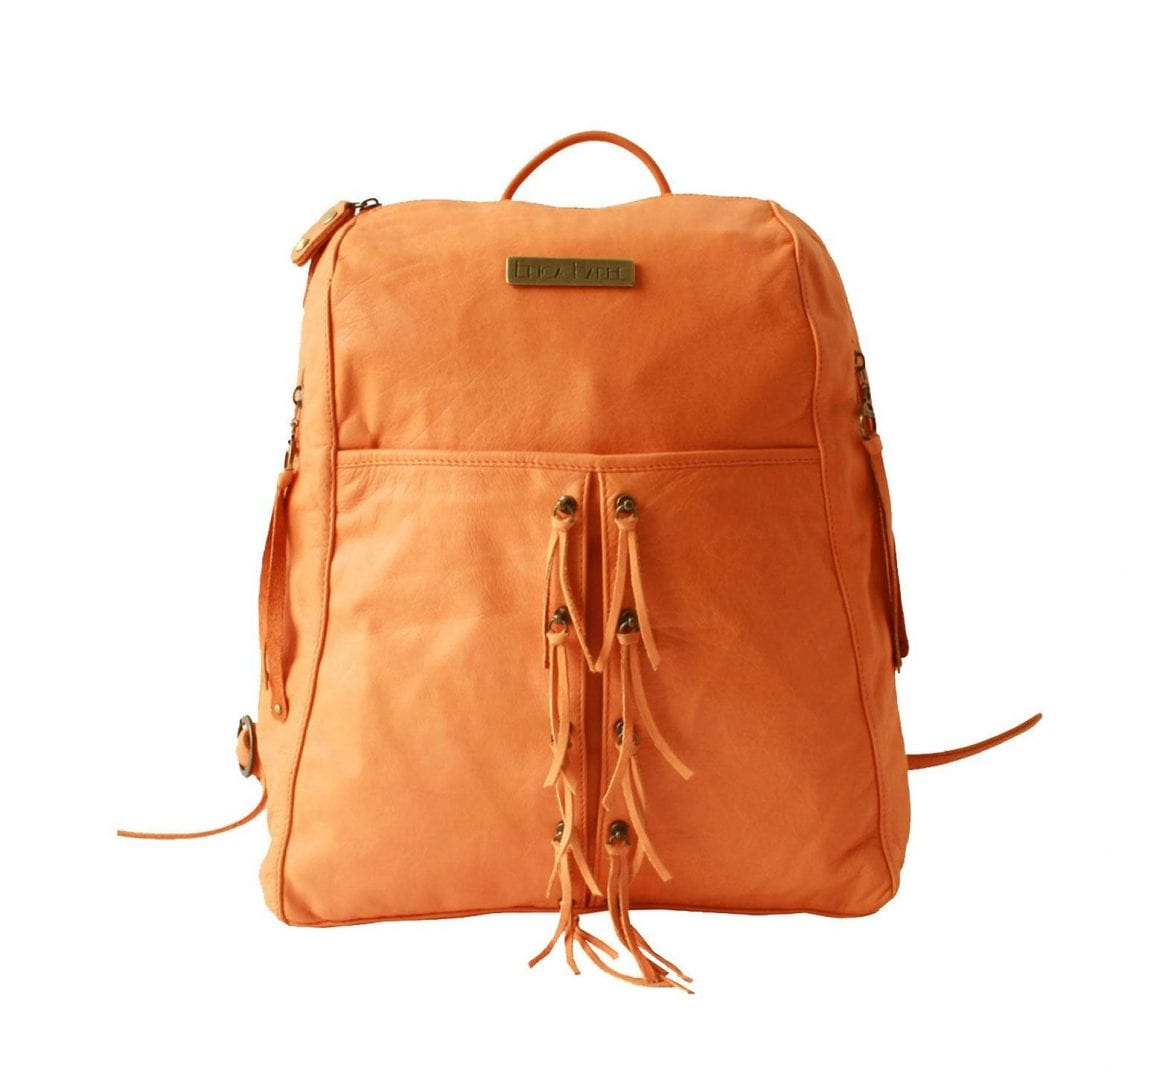 soft orange leather backpack